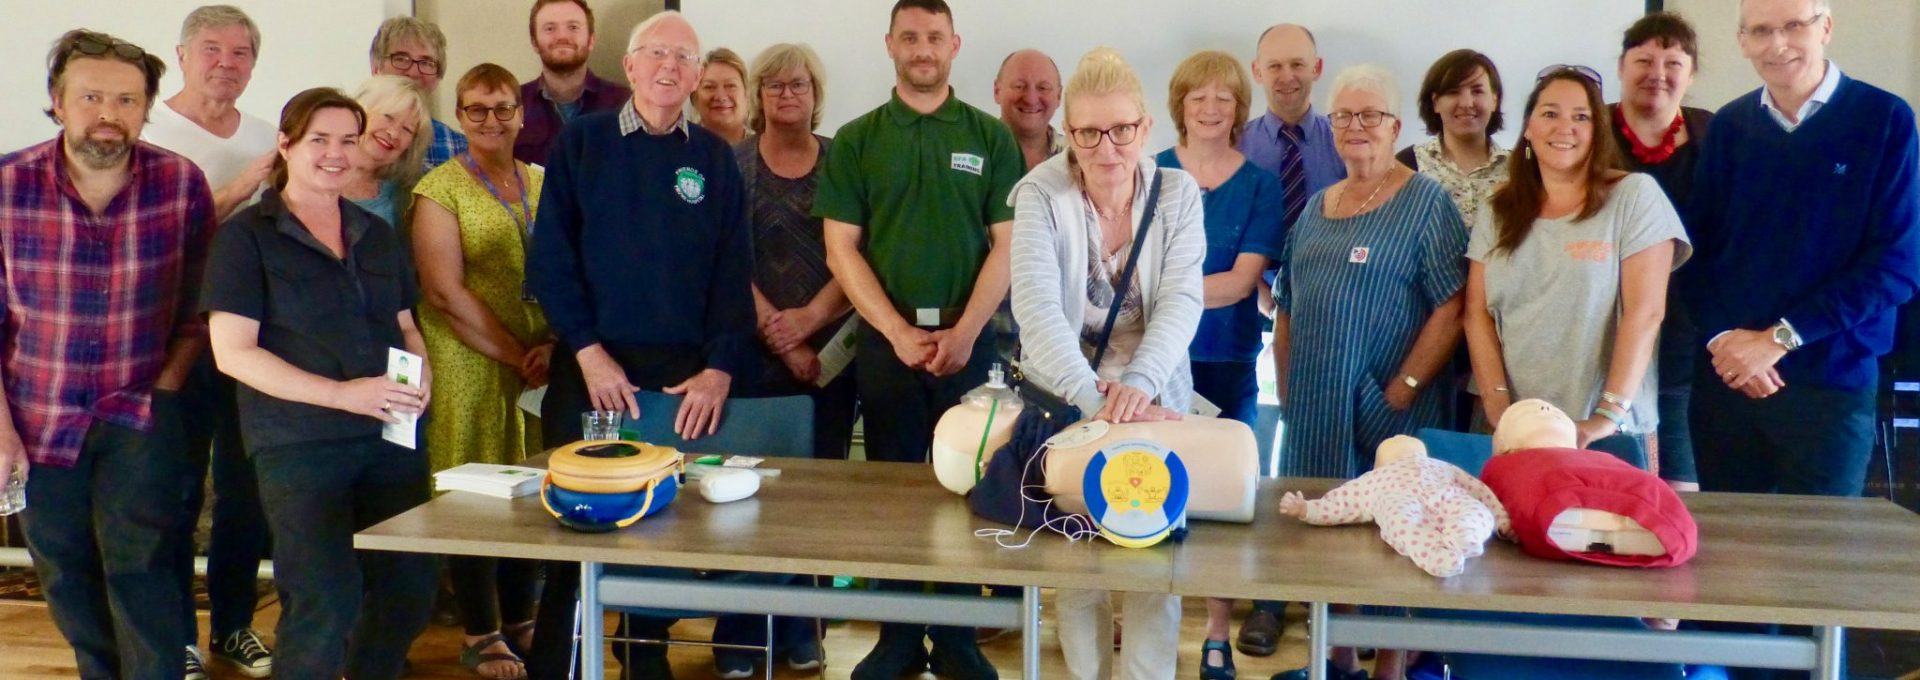 Defibrillator training for council